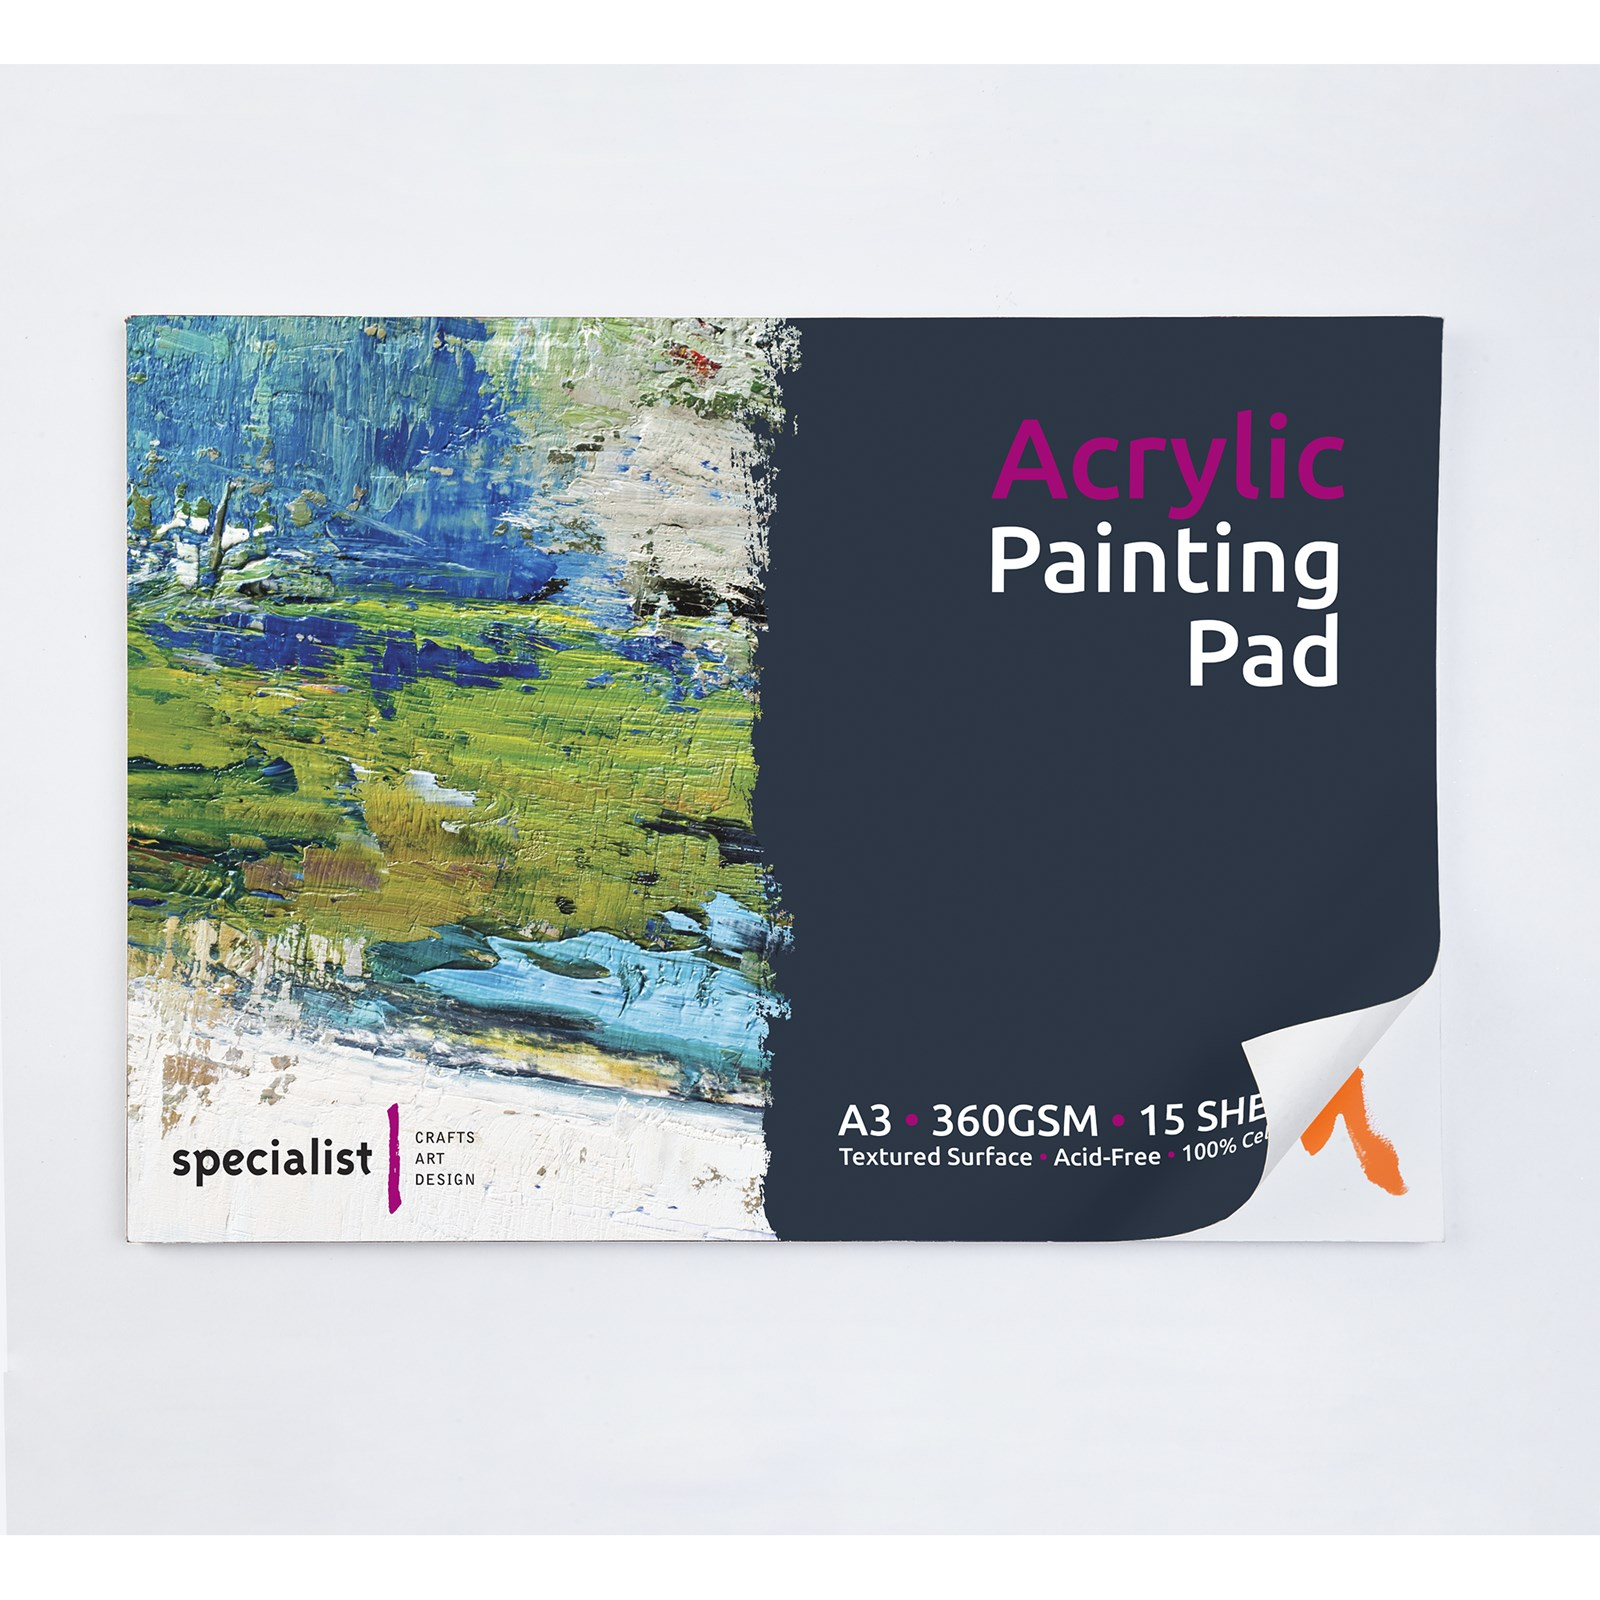 Specialist Crafts Acrylic Painting Pad